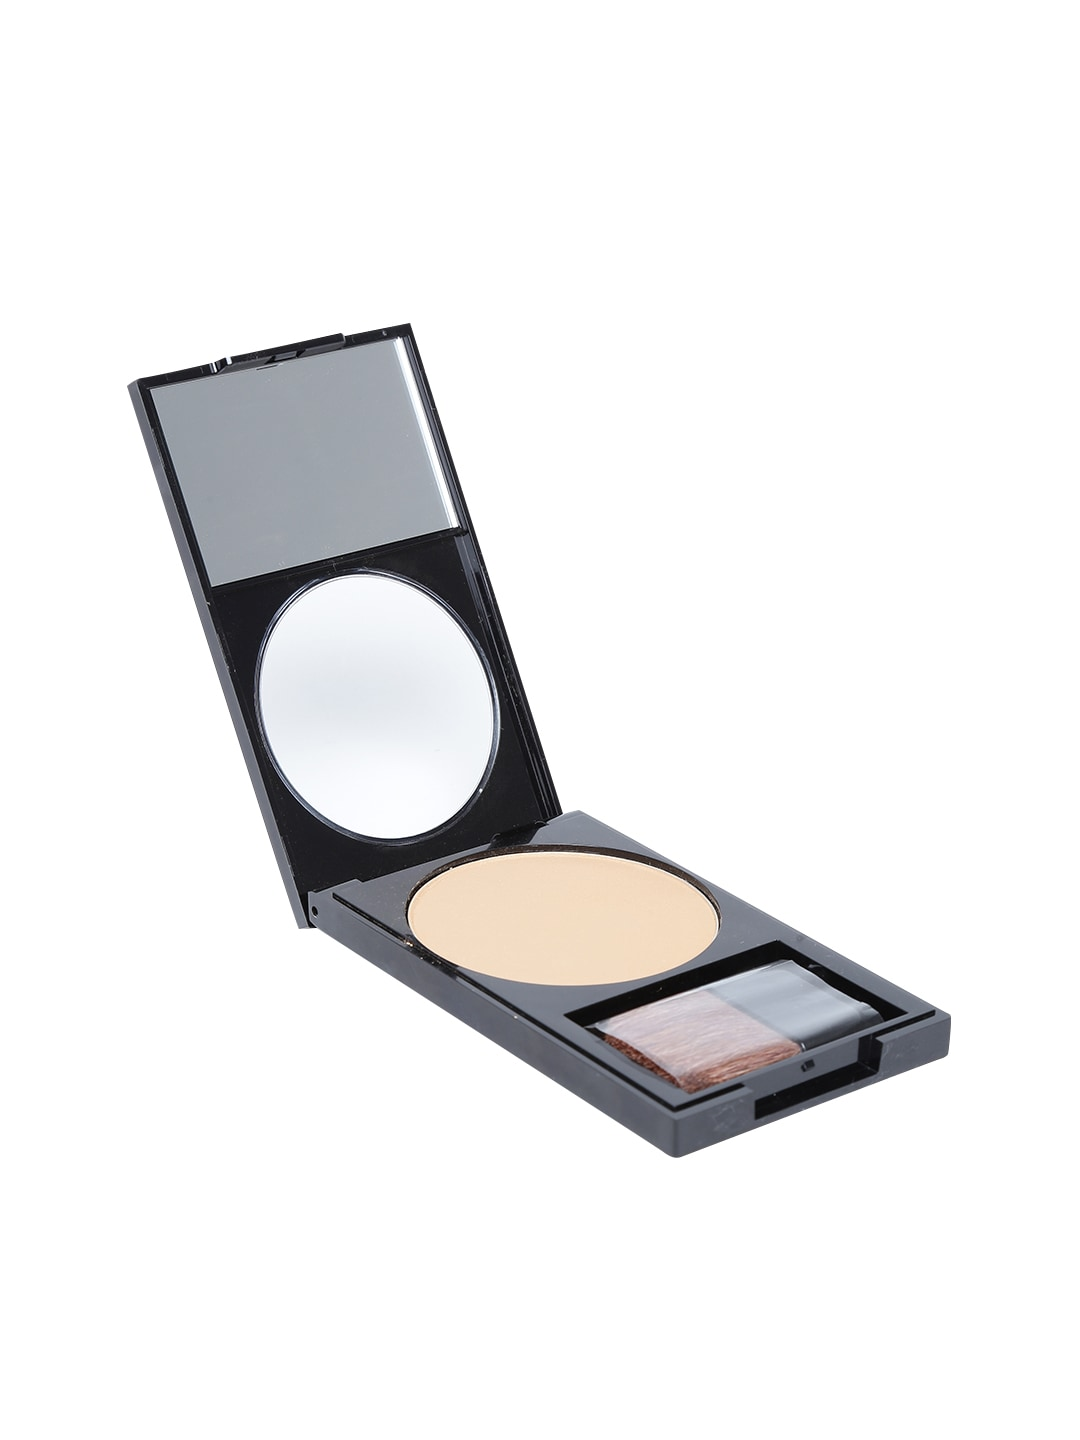 Revlon Photoready Powder Compact 030 with SPF 14 image